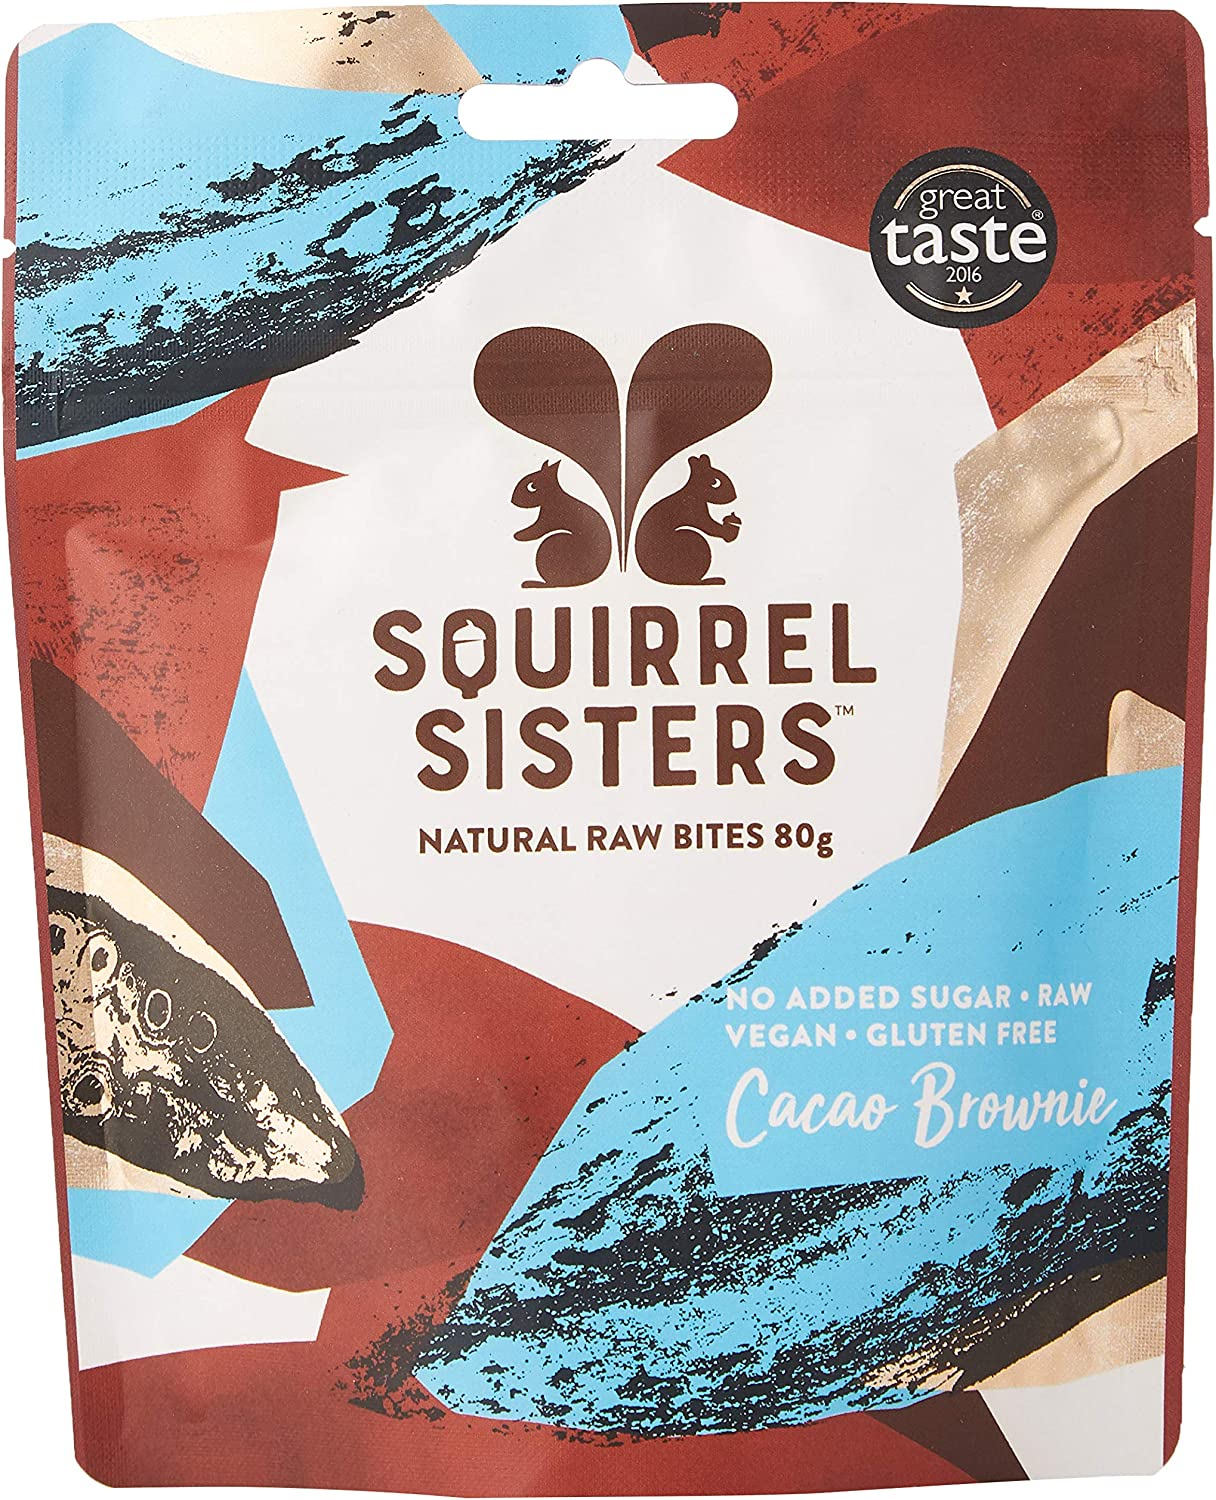 Squirrel Sisters Cacao Brownie Natural Raw Bites Share Bag 80 g